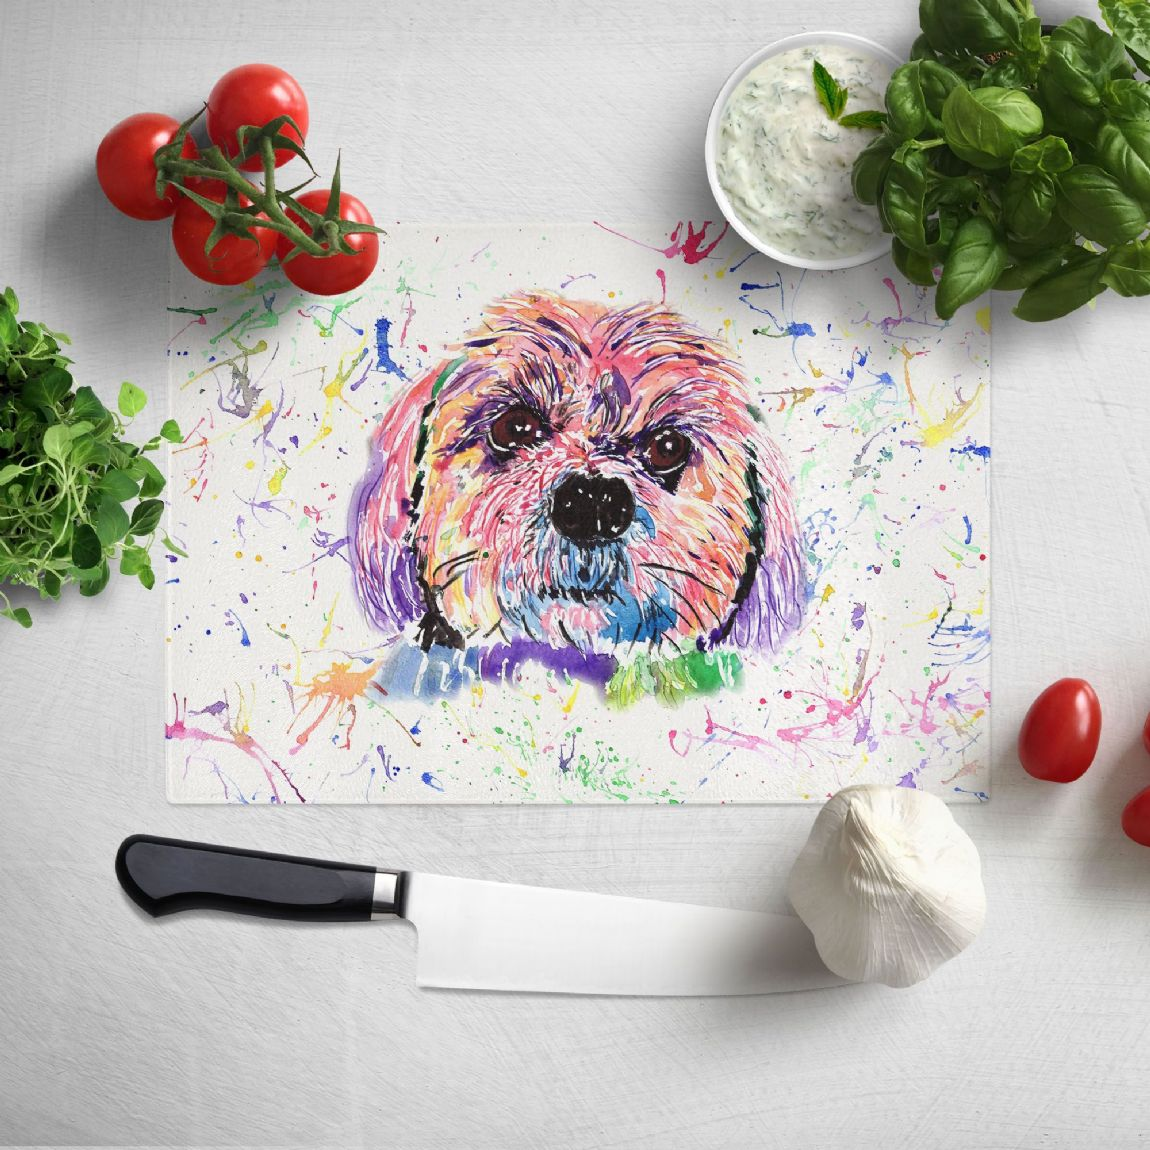 Glass worktop saver/chopping board (Lhaso Apso)